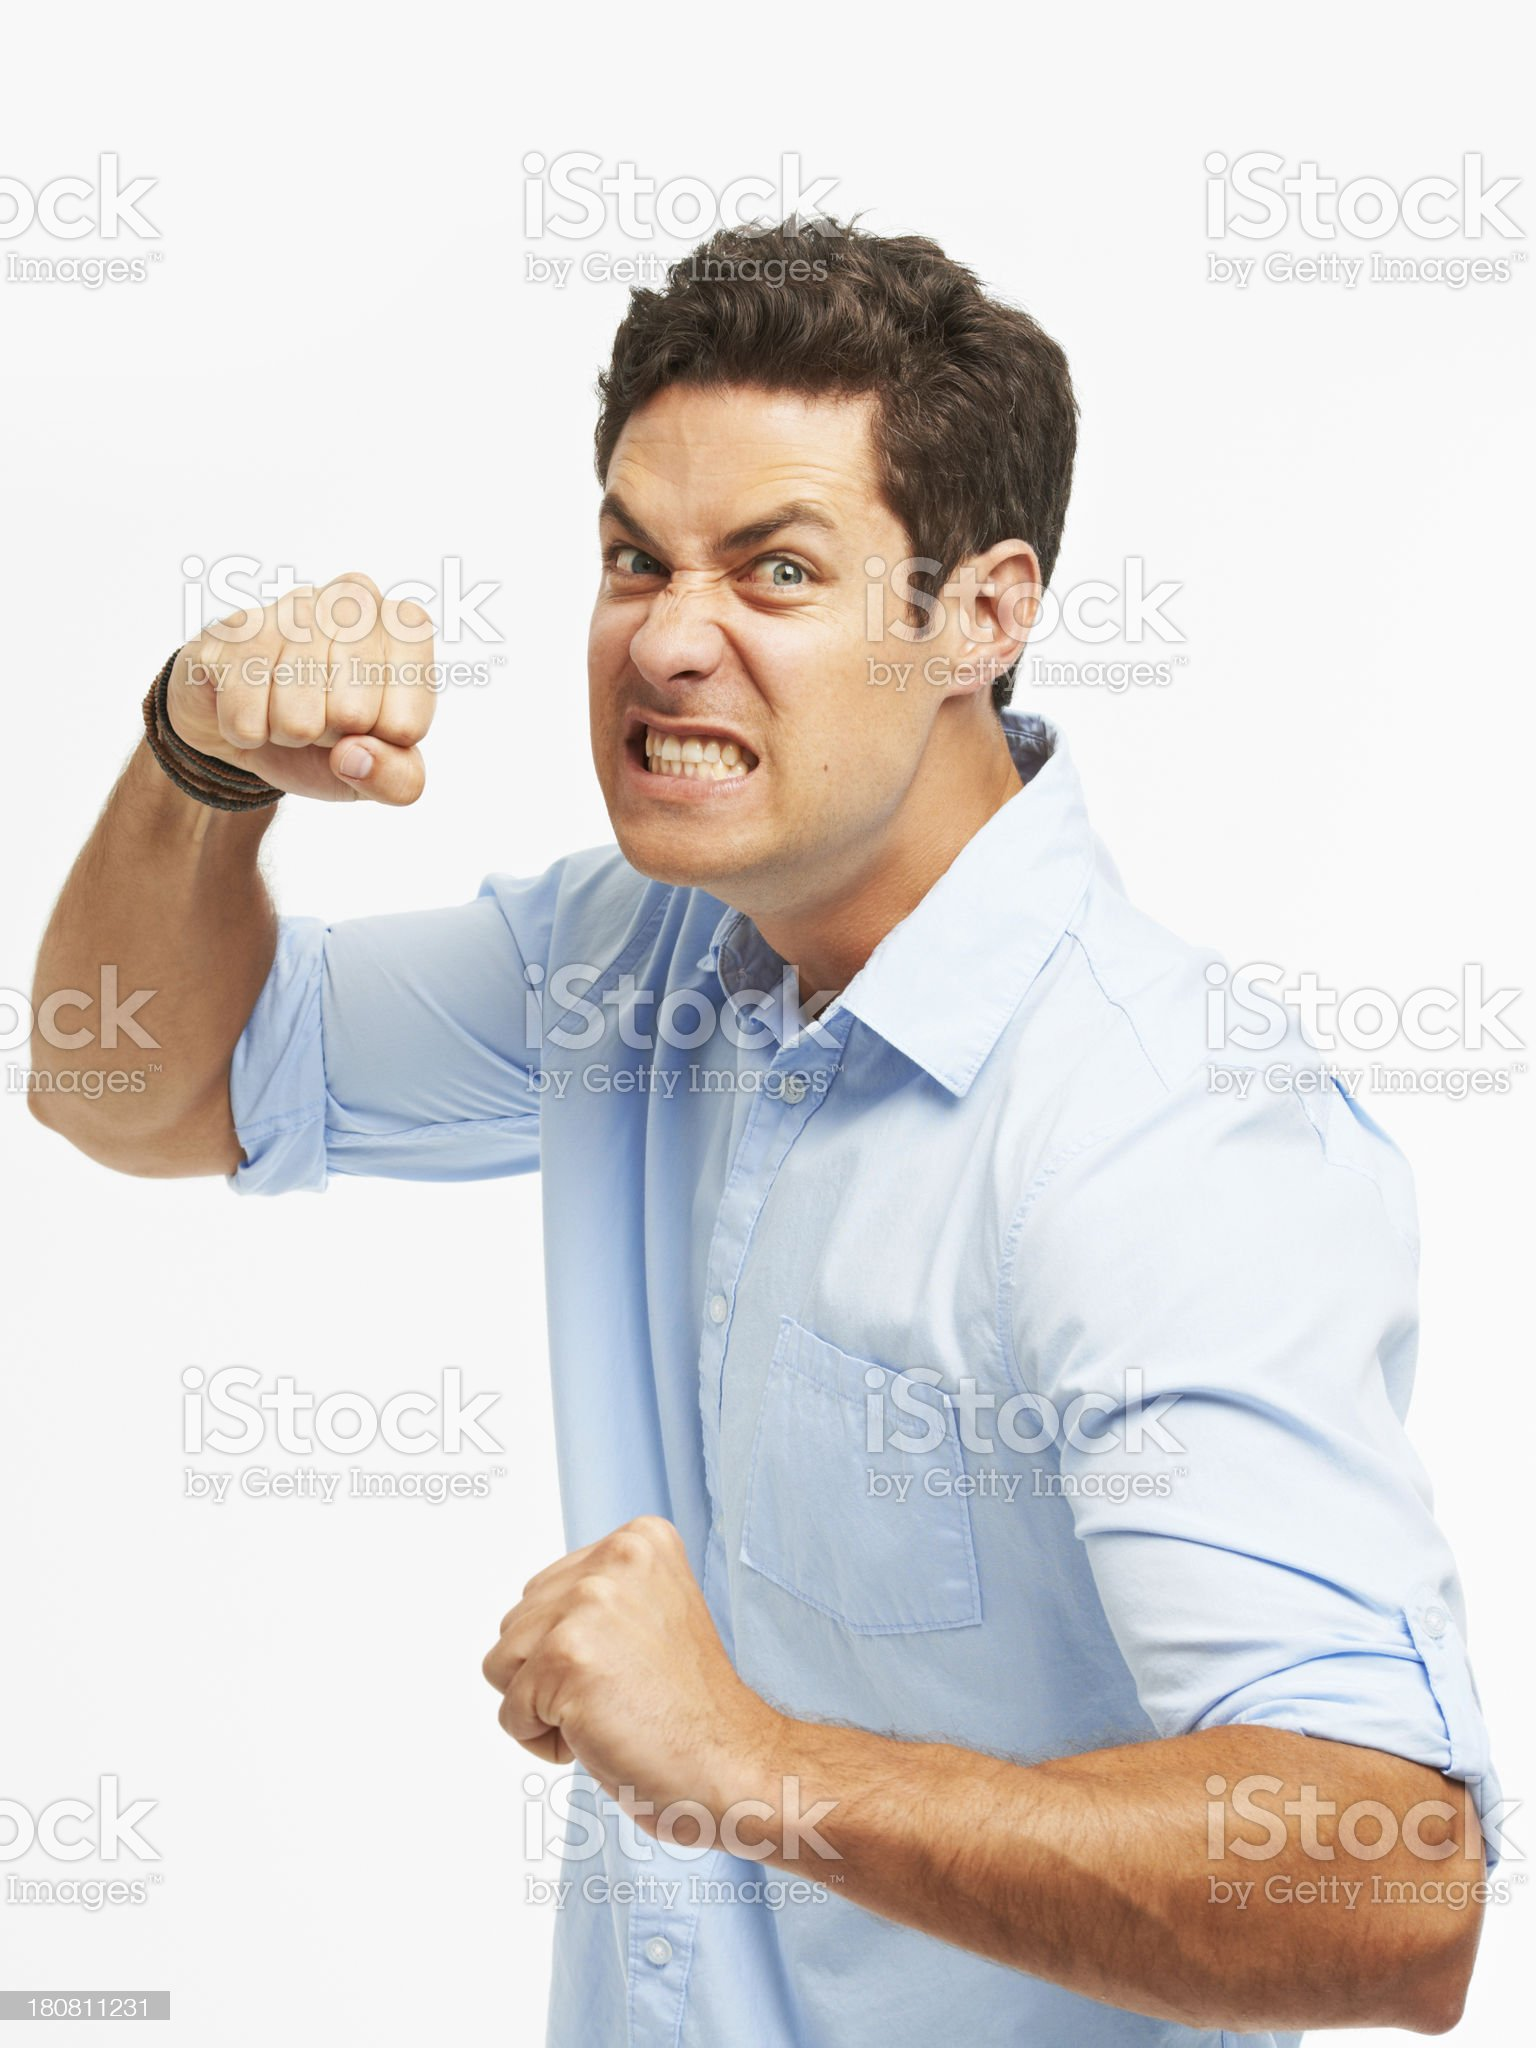 Losing his cool royalty-free stock photo